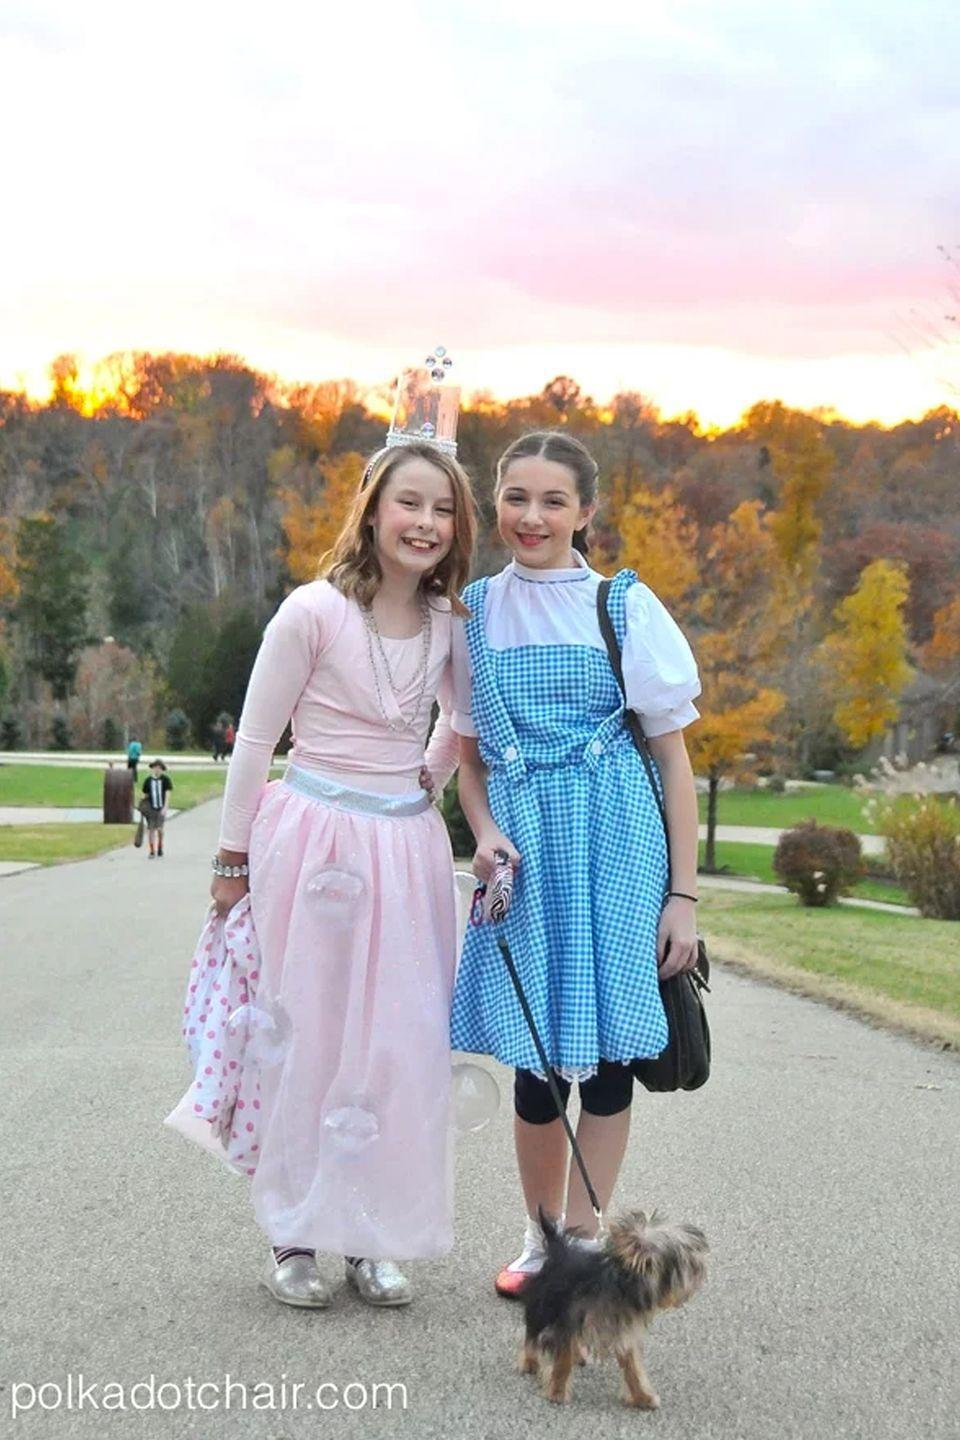 """<p>The Wicked Witch of the West doesn't get to go trick-or-treating this year. Glinda, the Good Witch of the South, buddies up with Dorothy (and Toto!) in this sweet DIY costume. </p><p><em><a href=""""https://www.polkadotchair.com/diy-glinda-costume/"""" rel=""""nofollow noopener"""" target=""""_blank"""" data-ylk=""""slk:Get the tutorial at Polkadot Chair >>"""" class=""""link rapid-noclick-resp"""">Get the tutorial at Polkadot Chair >></a><br></em></p><p><strong>RELATED: </strong><a href=""""https://www.goodhousekeeping.com/holidays/halloween-ideas/g1709/homemade-halloween-costumes/"""" rel=""""nofollow noopener"""" target=""""_blank"""" data-ylk=""""slk:Easy Homemade Halloween Costumes for Adults, Kids, and Everyone in Between"""" class=""""link rapid-noclick-resp"""">Easy Homemade Halloween Costumes for Adults, Kids, and Everyone in Between</a><br></p>"""